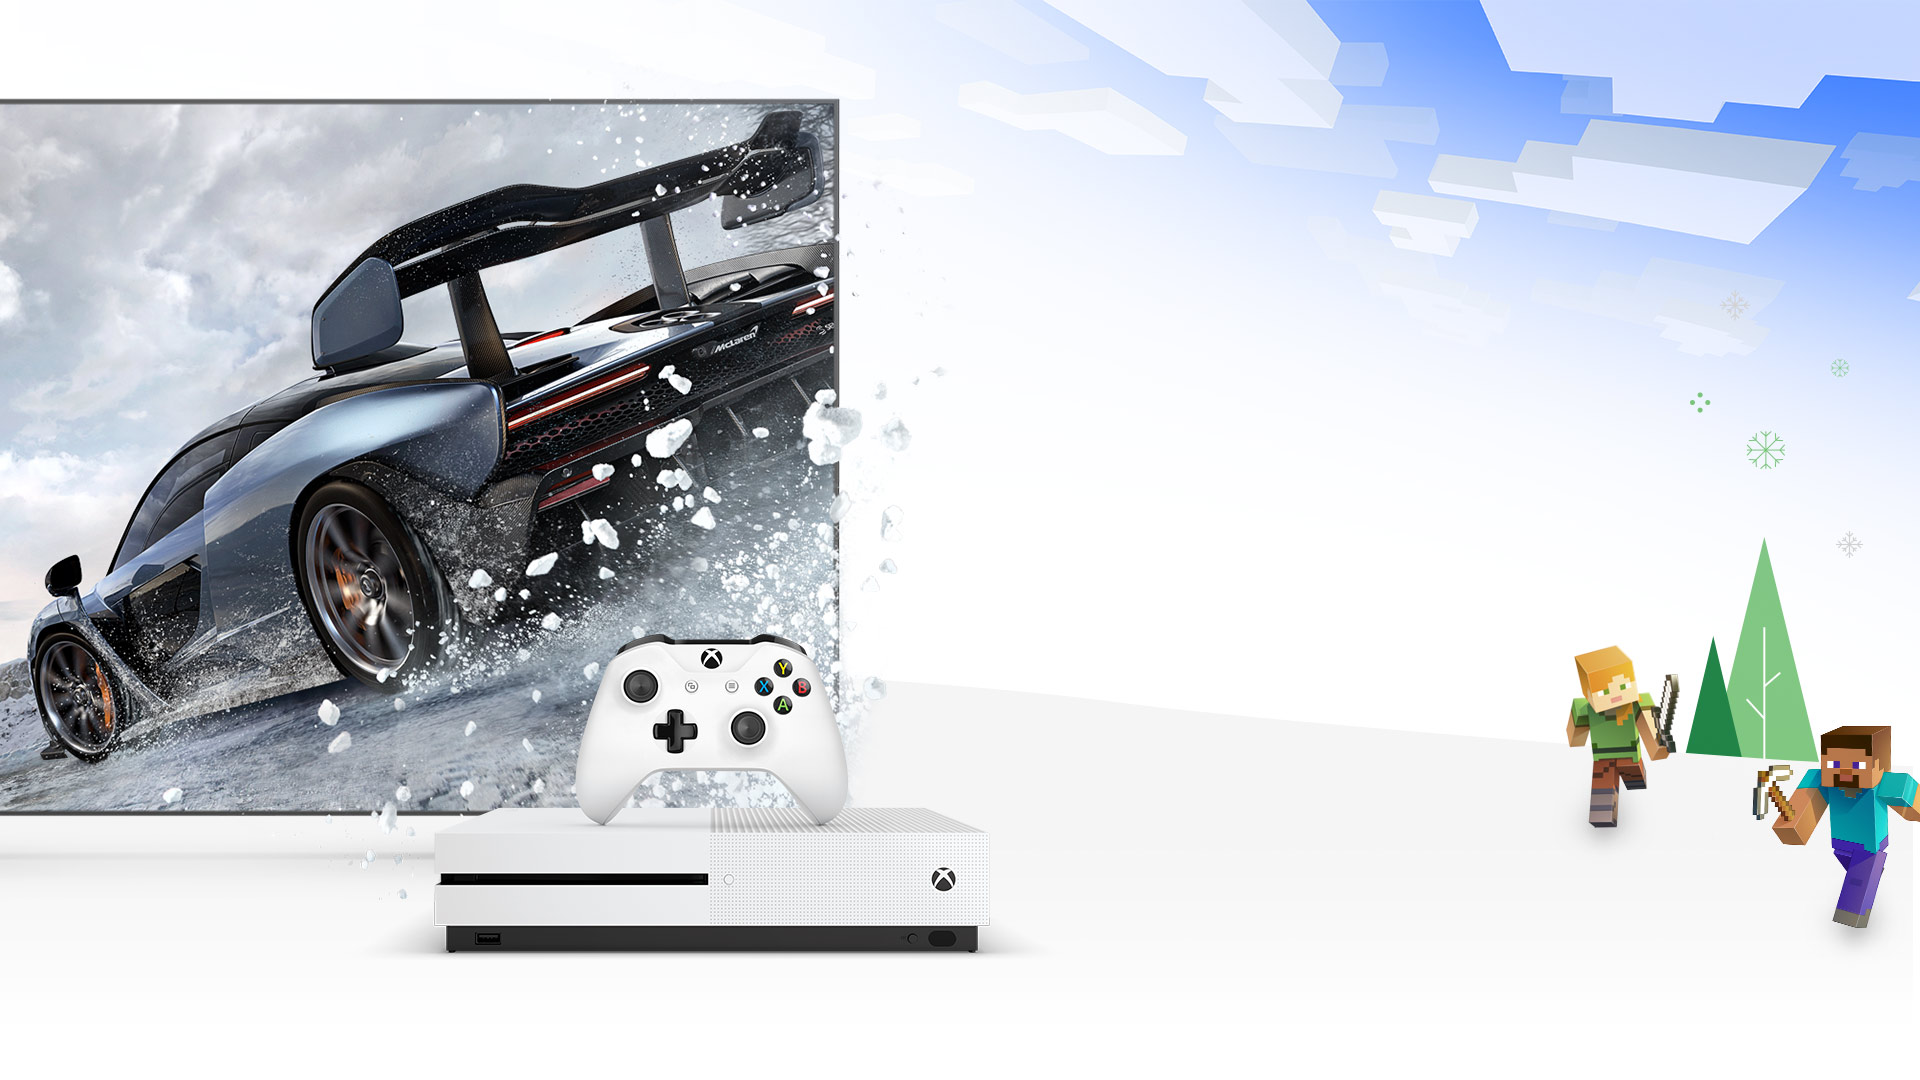 Front view of Xbox One S in front of Forza Horizon 4 Mclaren graphic